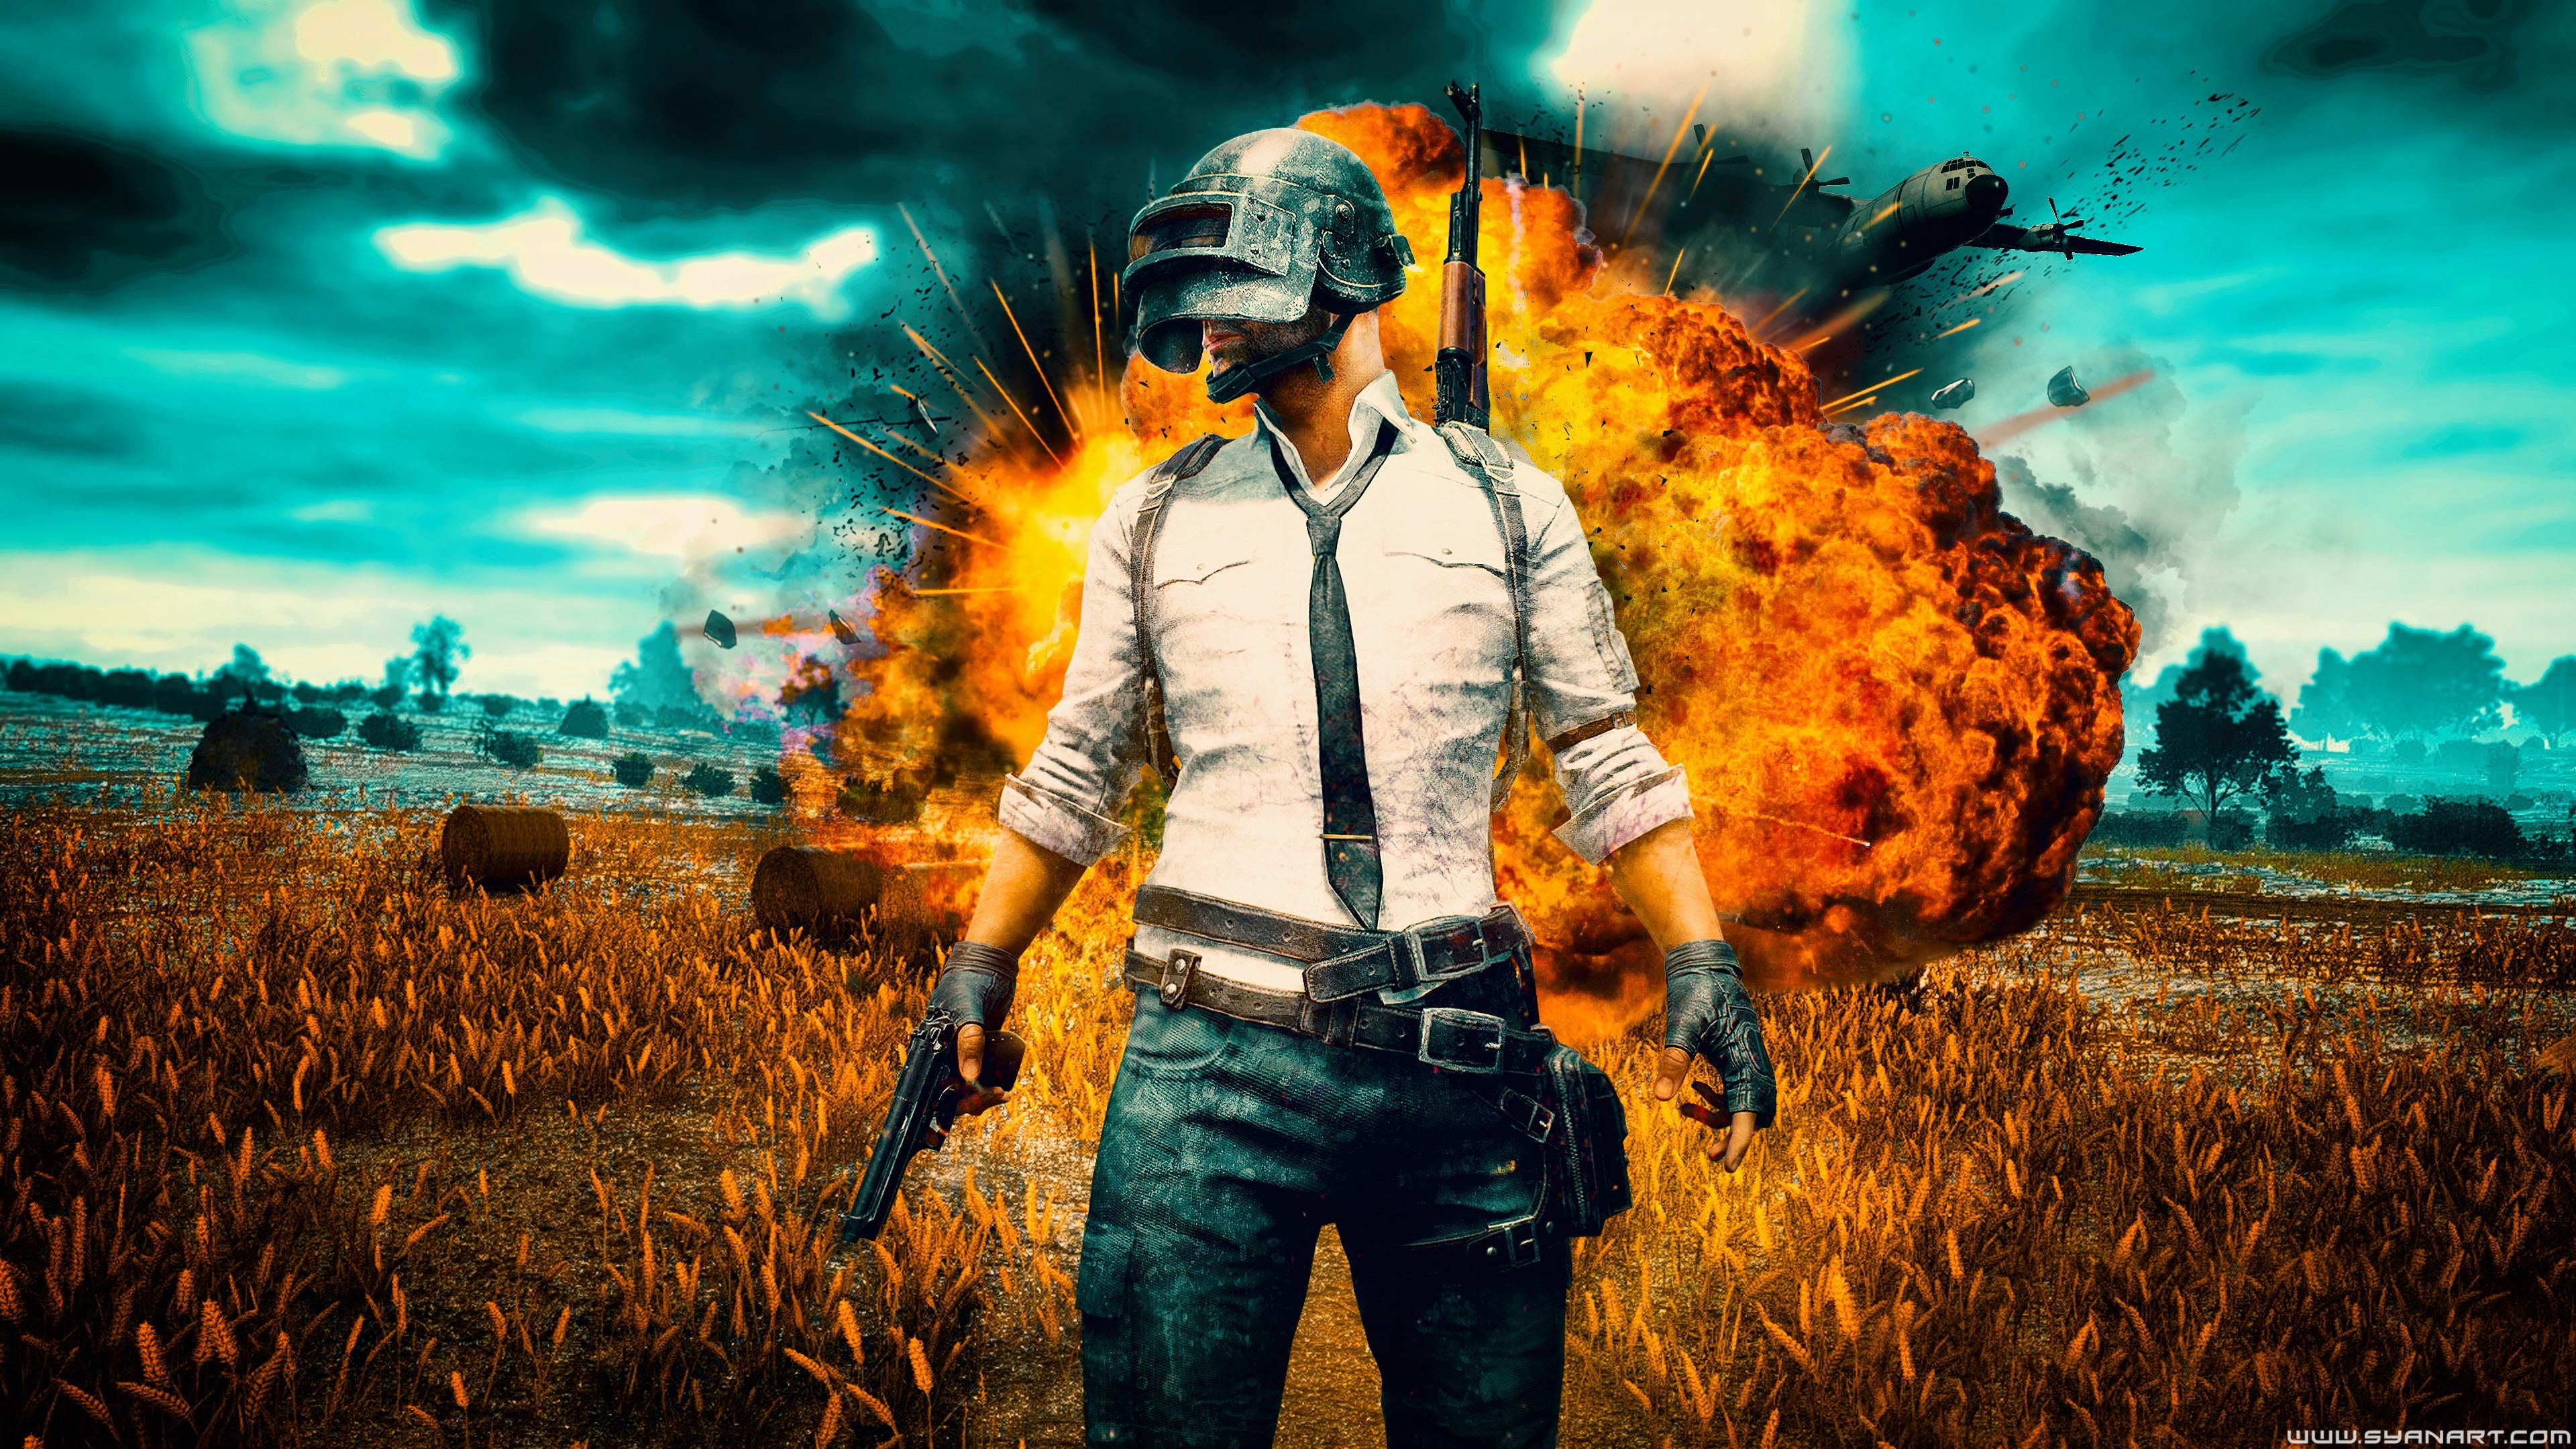 Pubg Explosion 4k Wallpaper Wallpaper Pc Hd Wallpapers For Pc 4k Gaming Wallpaper High graphic pubg hd wallpapers for pc